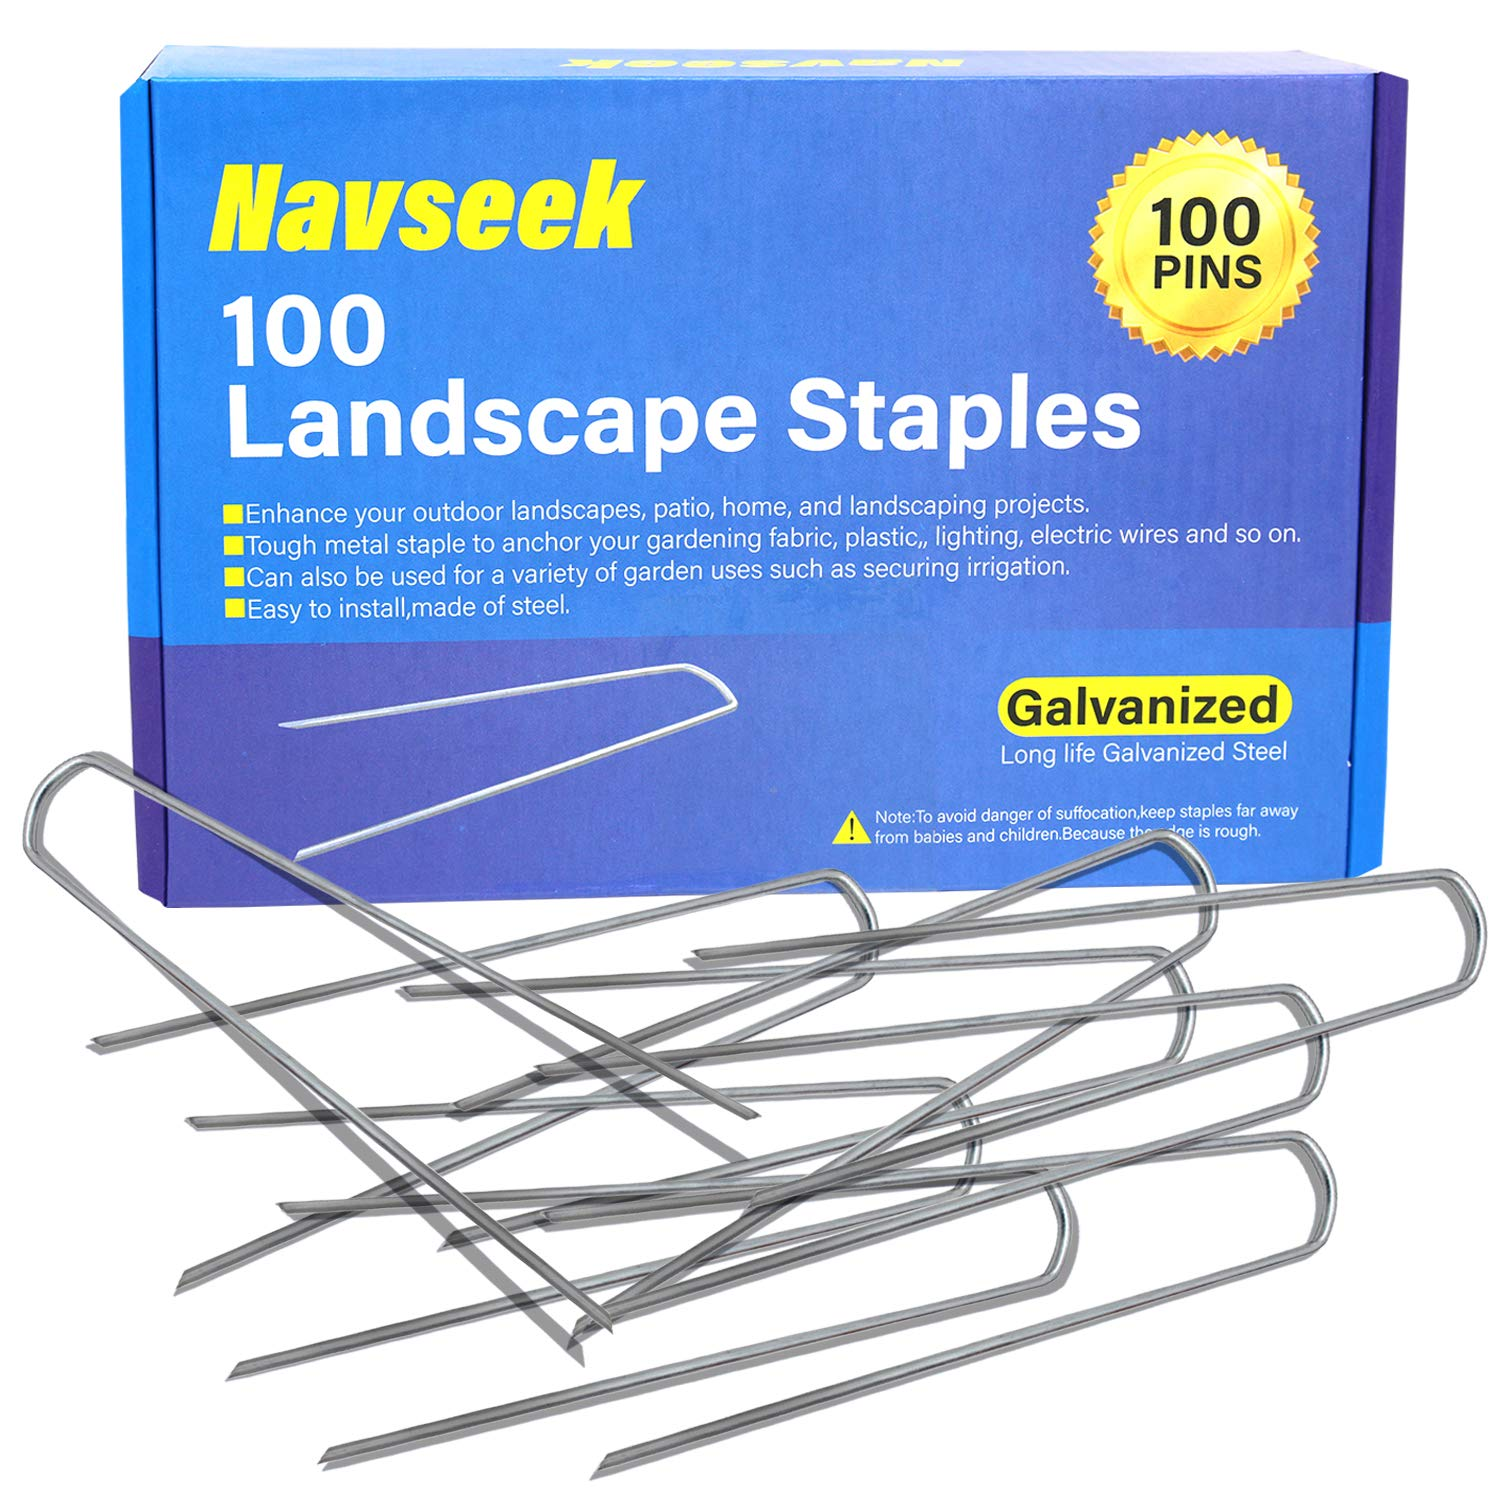 Navseek 100 Pack 6 inch Galvanized Garden Stakes Landscape Staples Sod Staples, Garden Staples Square Pins Sturdy Rust Resistant Fabric Anchor Pins (100)